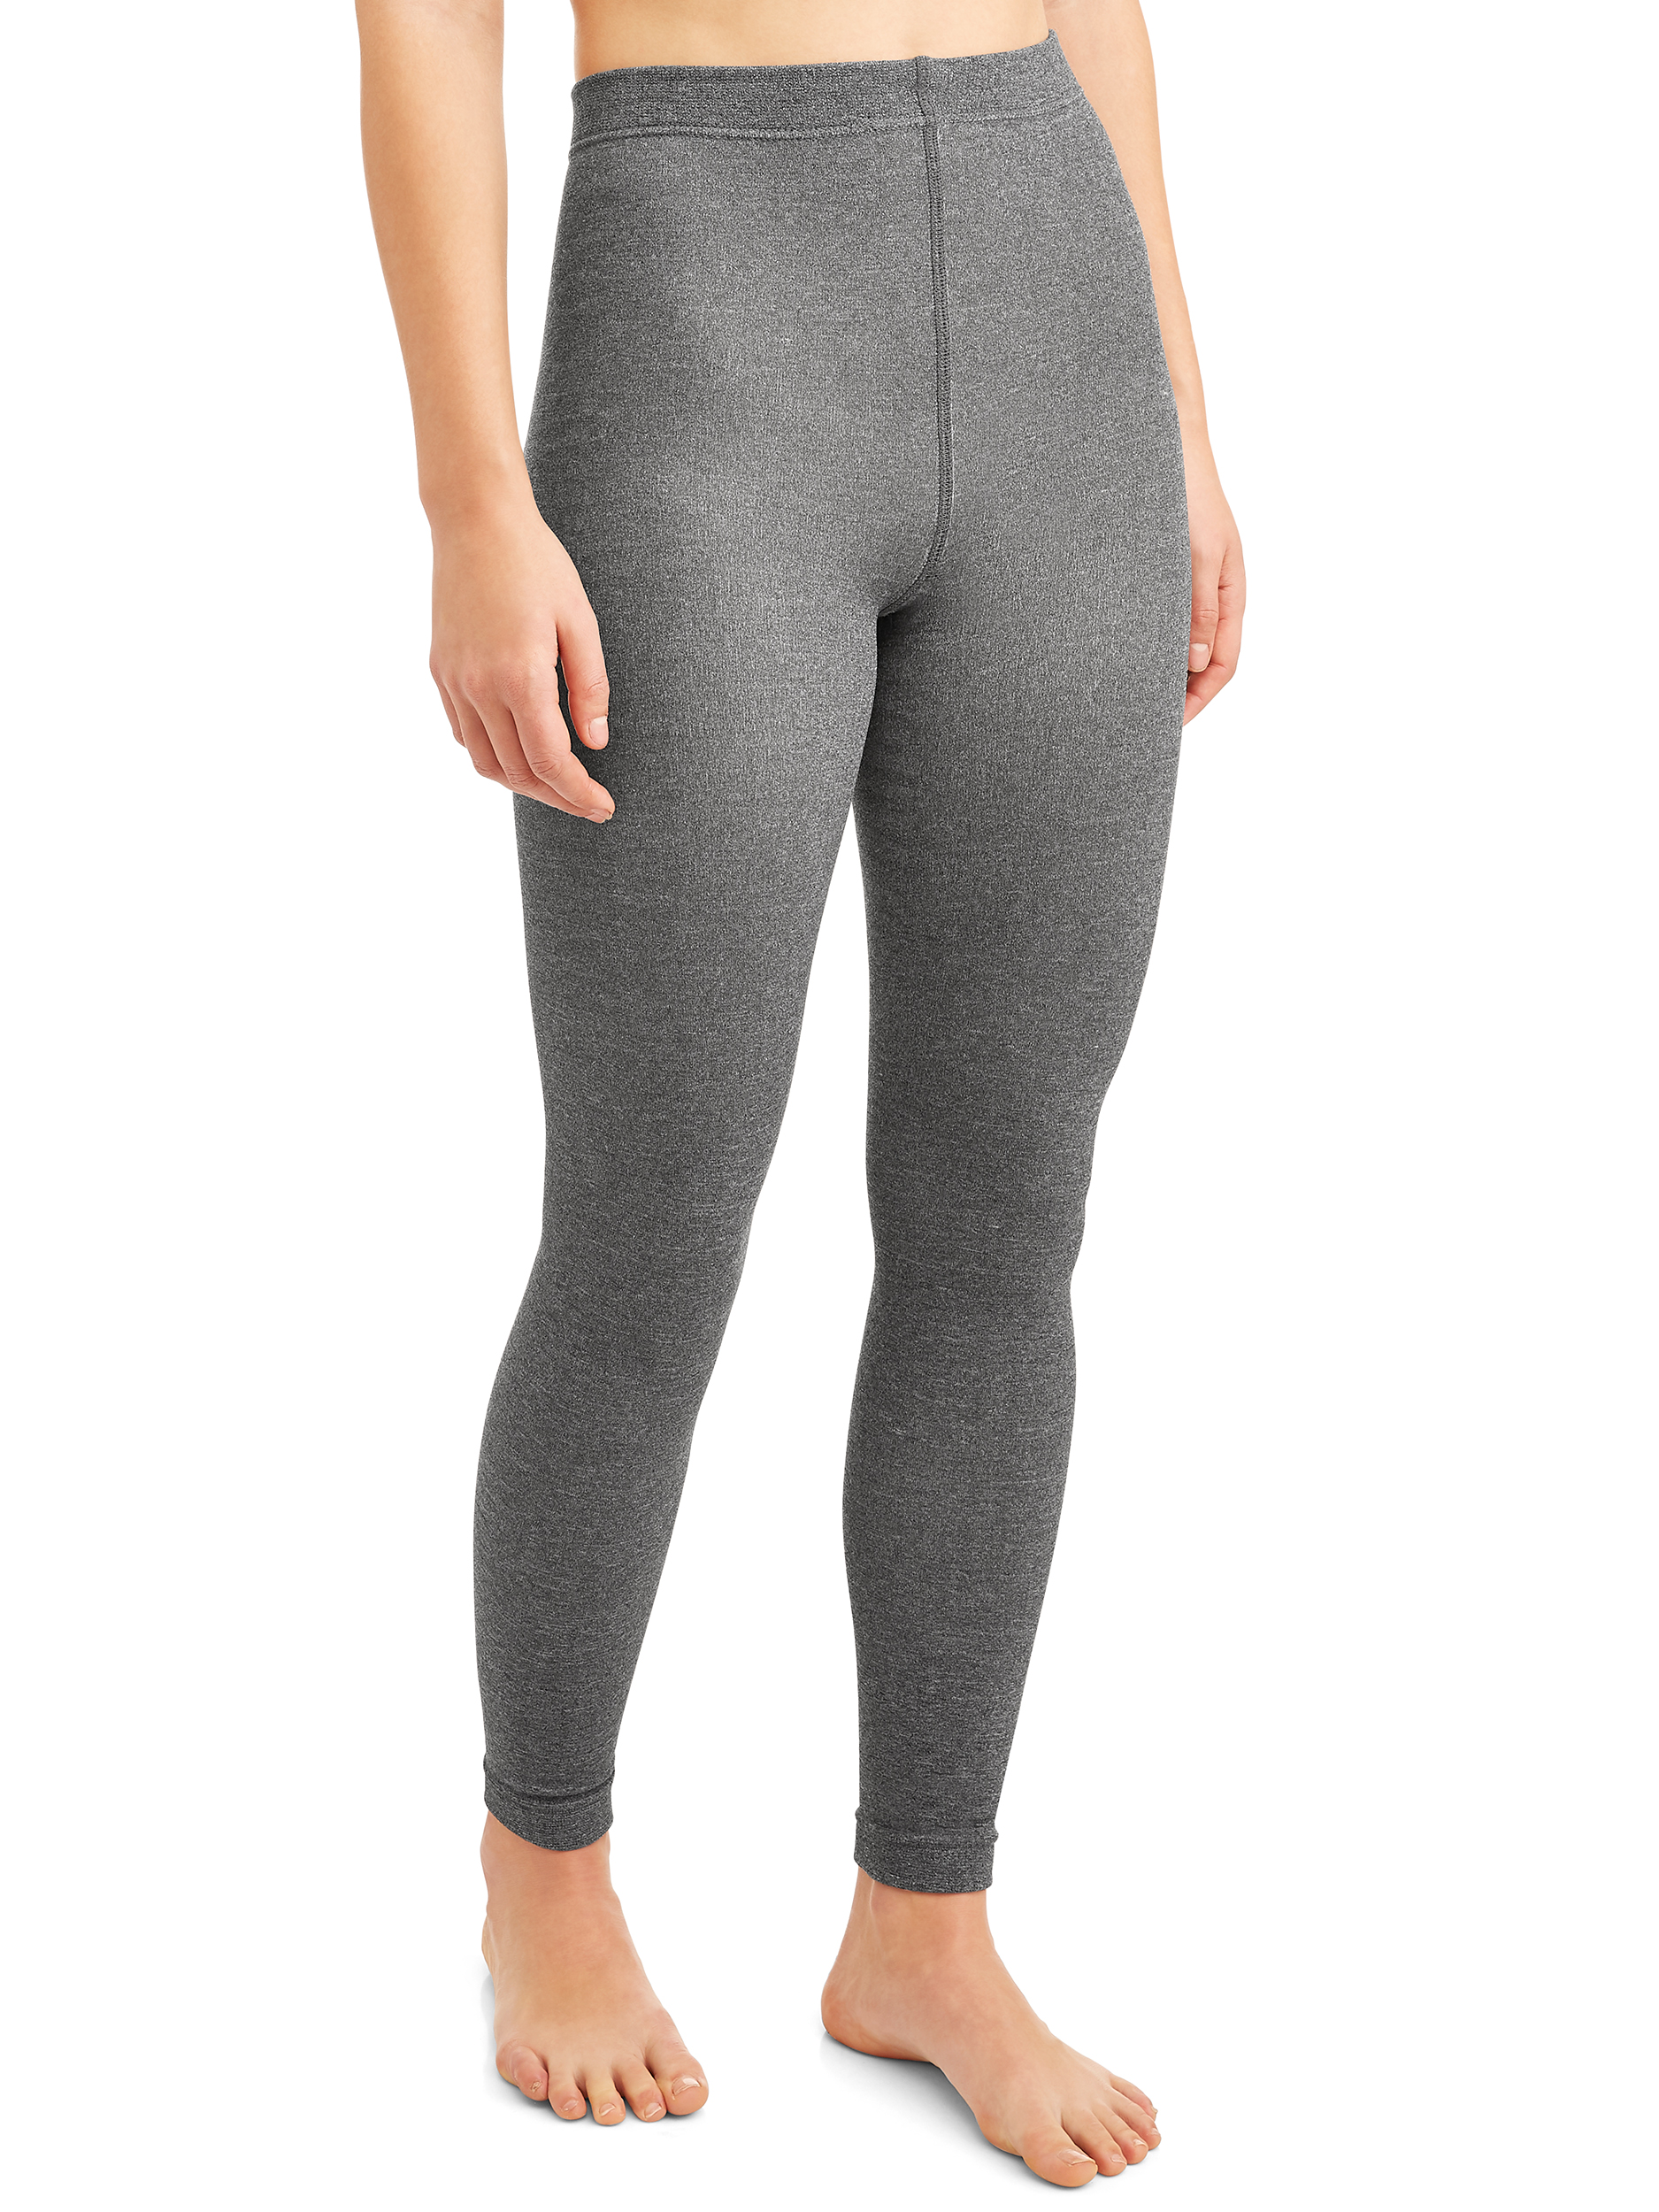 cae409e1563b5 Secret Treasures - Women's Fleece Lined Tights, 2-Pack - Walmart.com